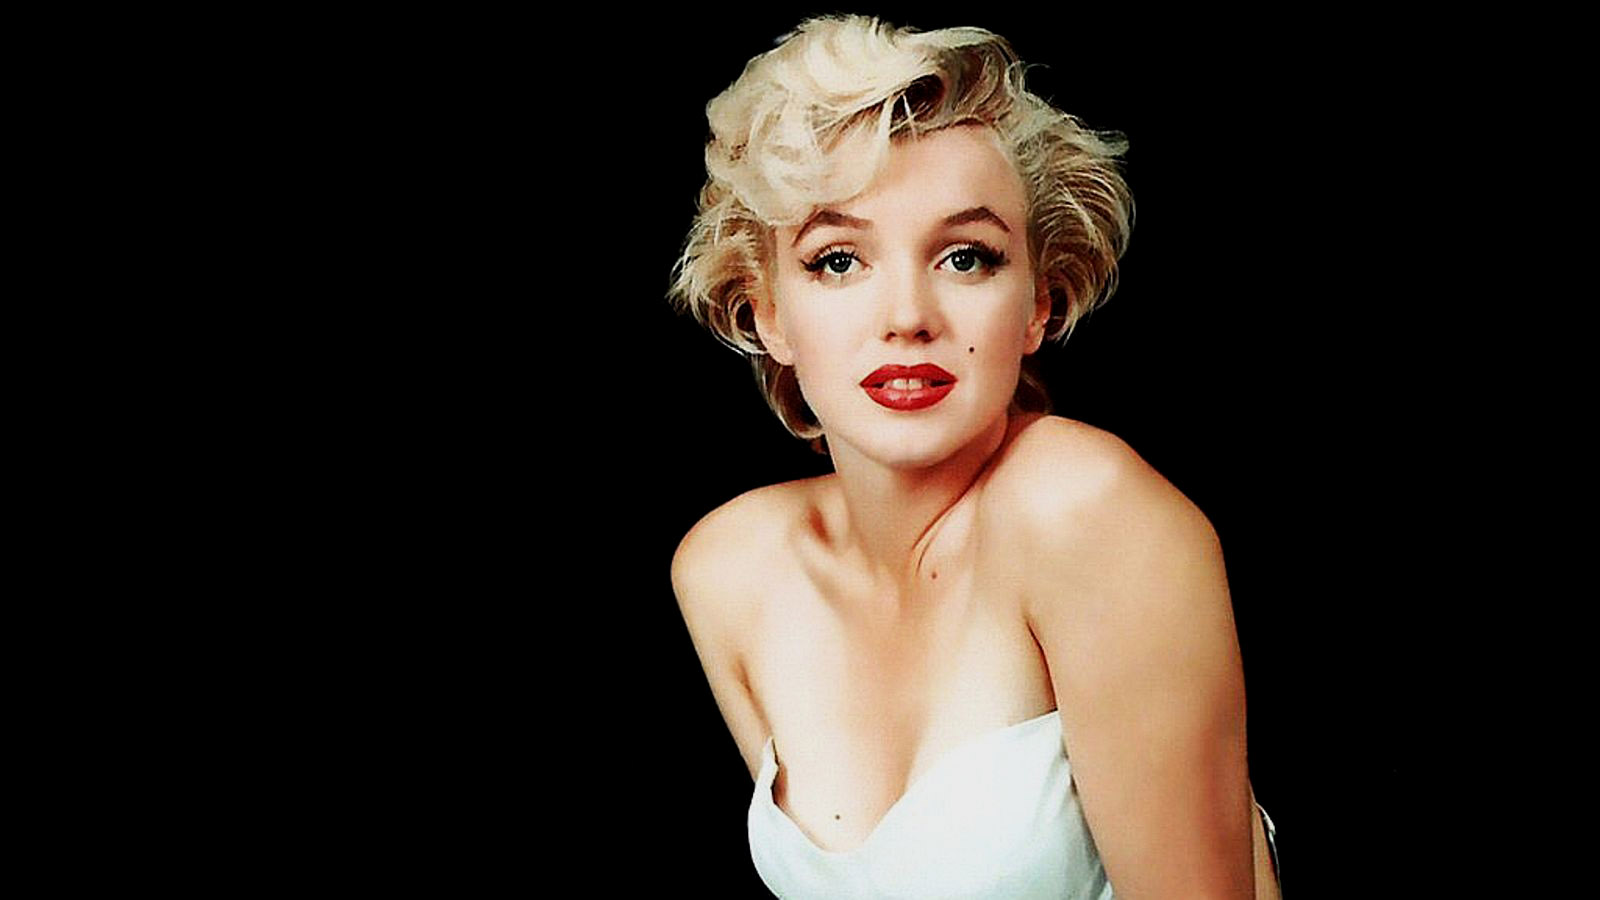 Not The Typical Marilyn Monroe Beauty Tip Blog Entry